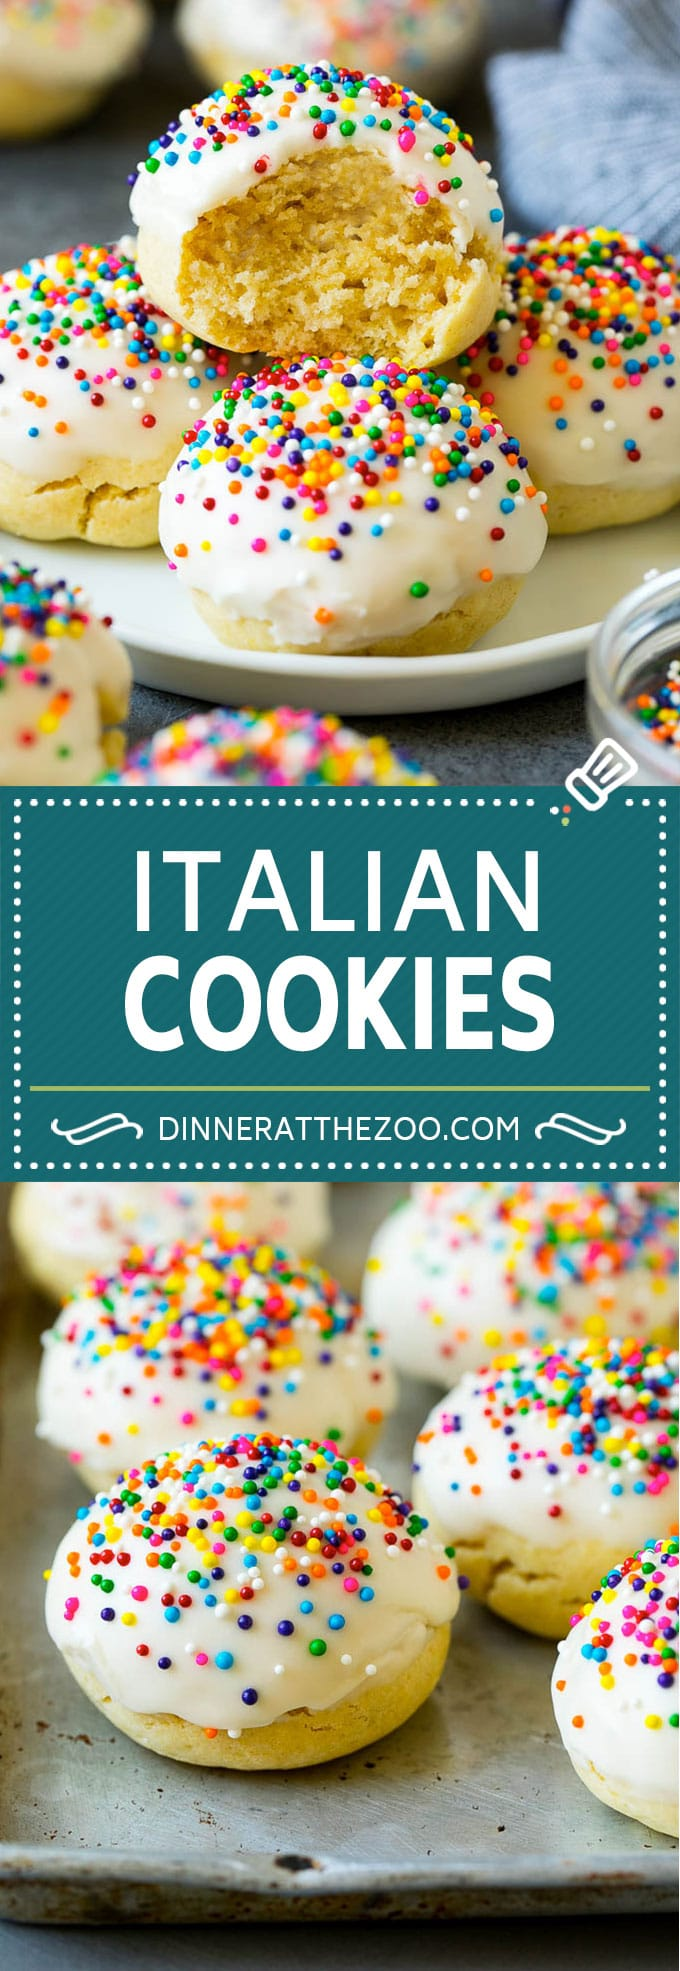 Italian Cookies Recipe | Almond Cookies #cookies #italianfood #frosting #sprinkles #baking #christmas #dinneratthezoo